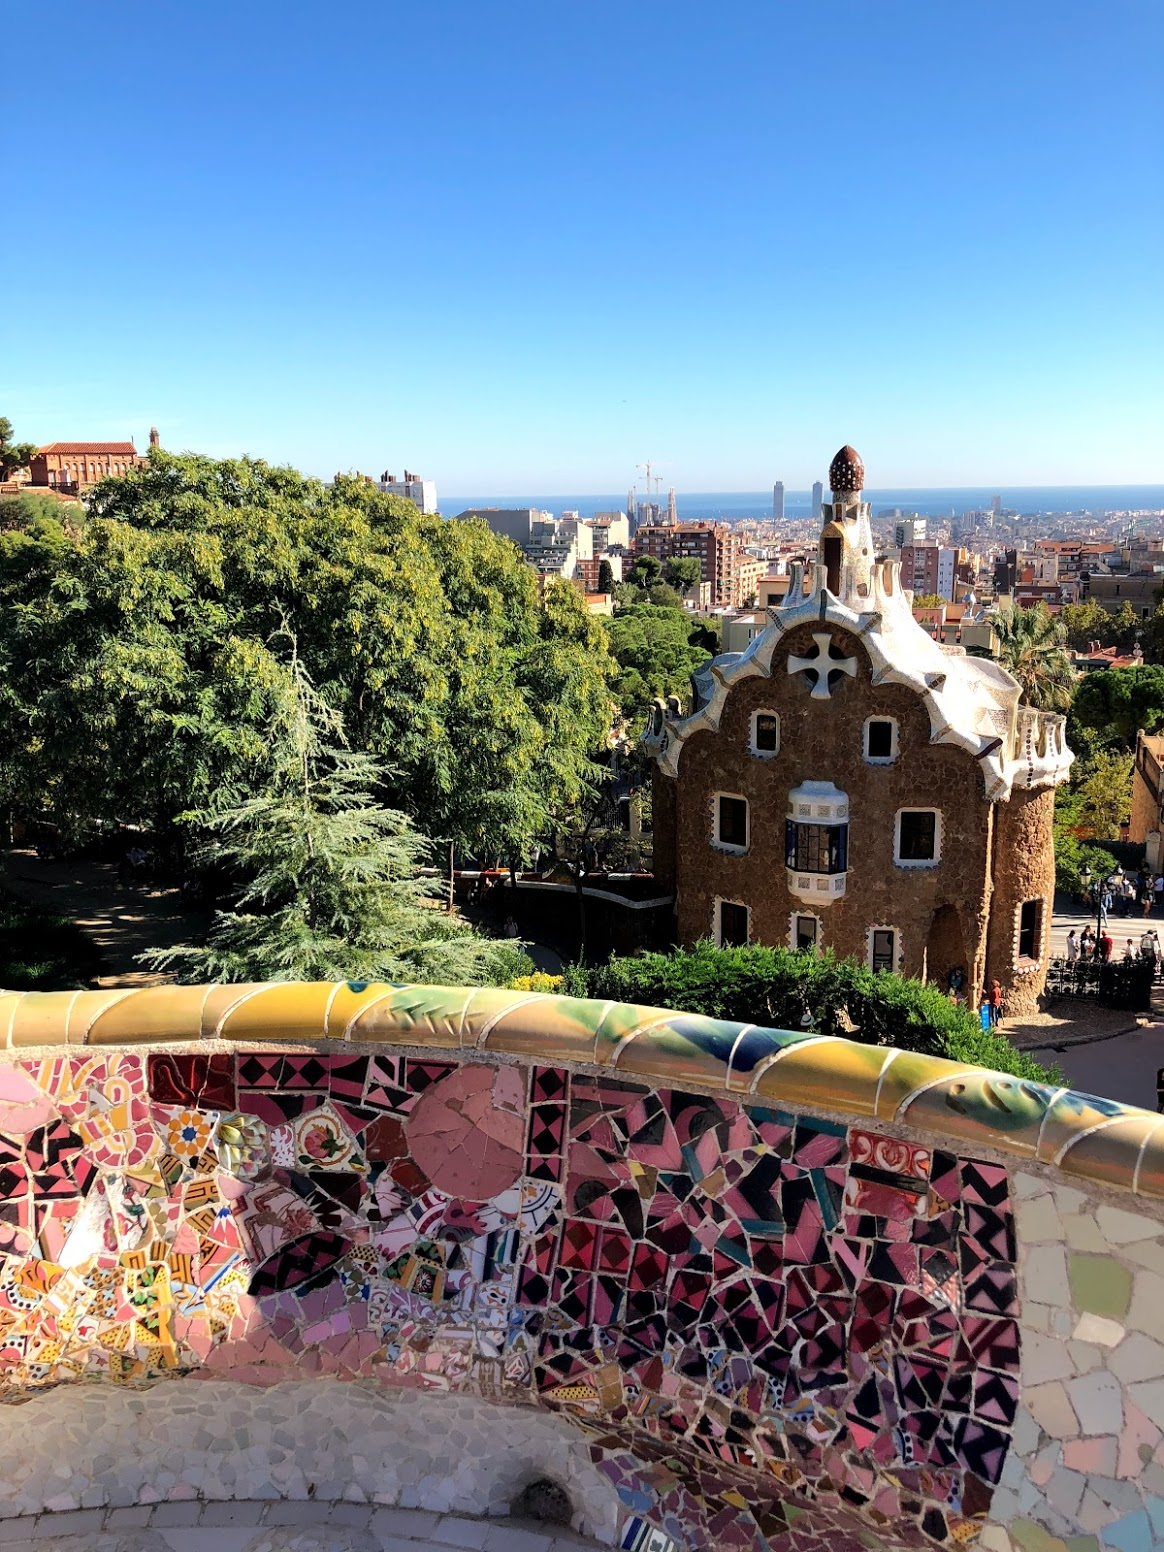 The Gaudi benches at the famous Park Guell